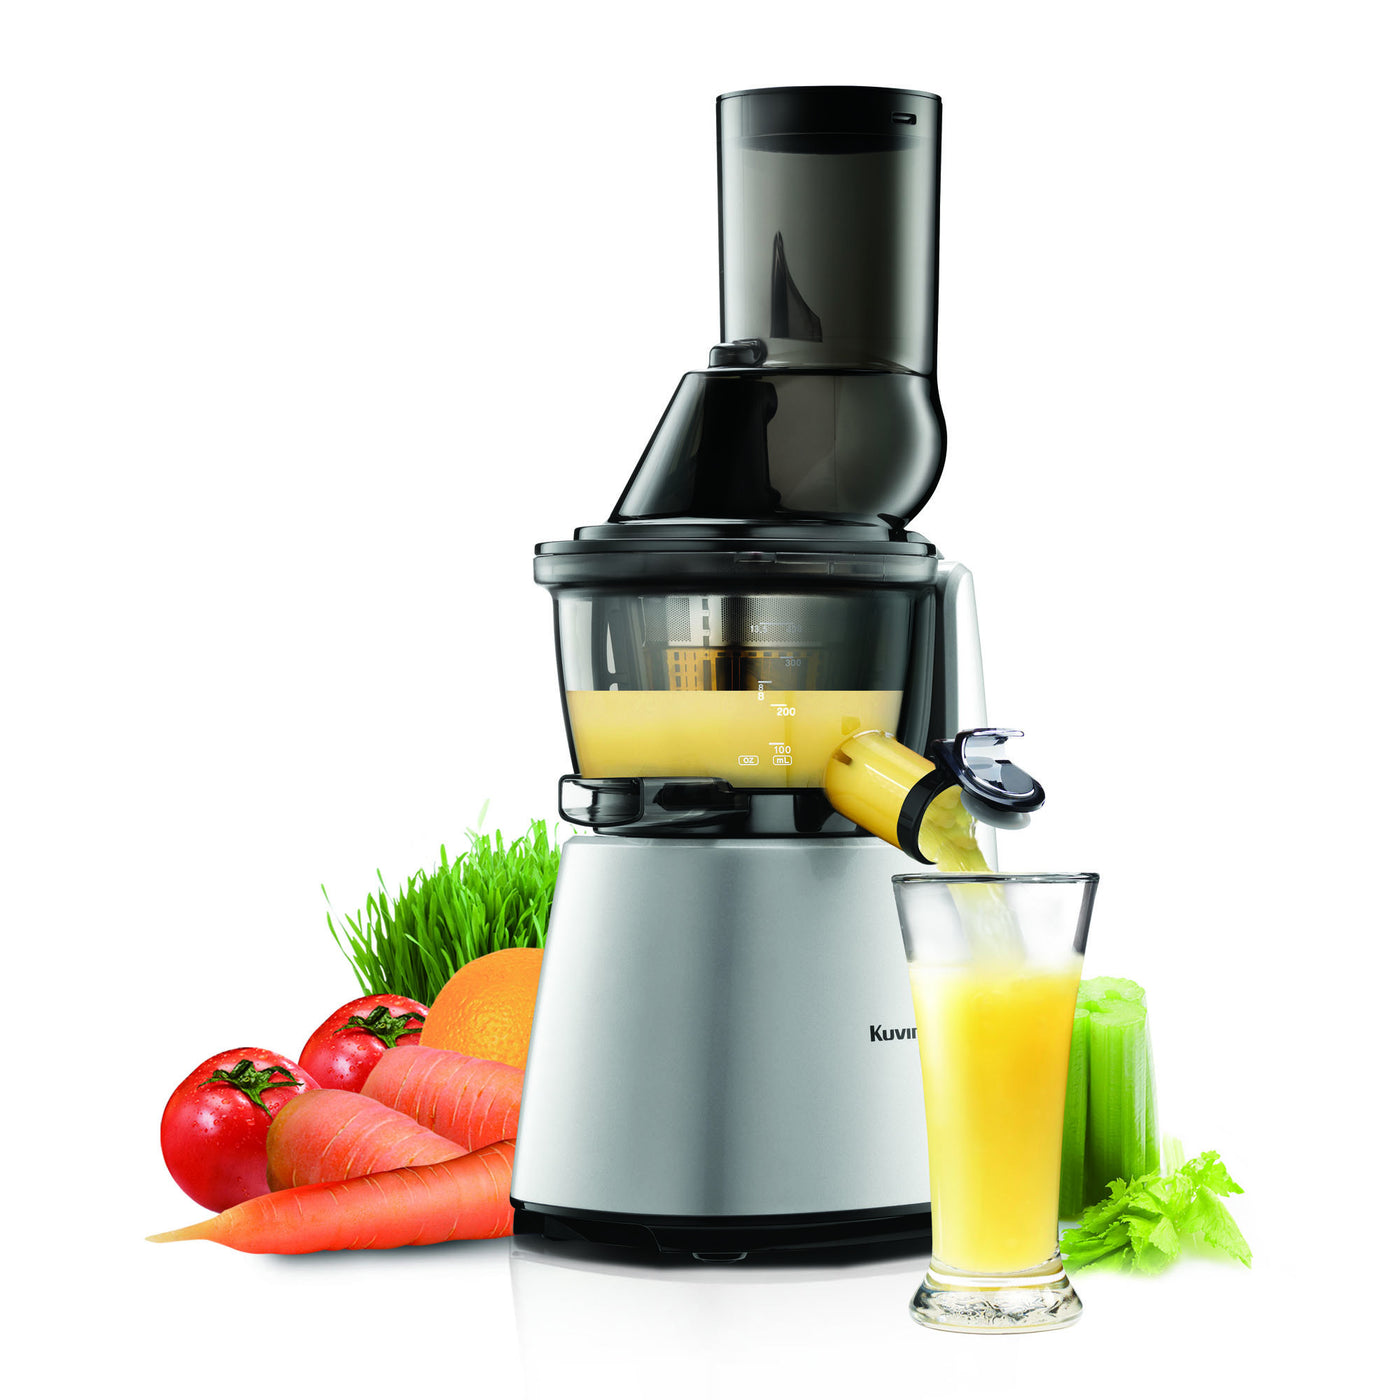 Kuvings Elite Whole Slow Juicer C7000 Juicerville